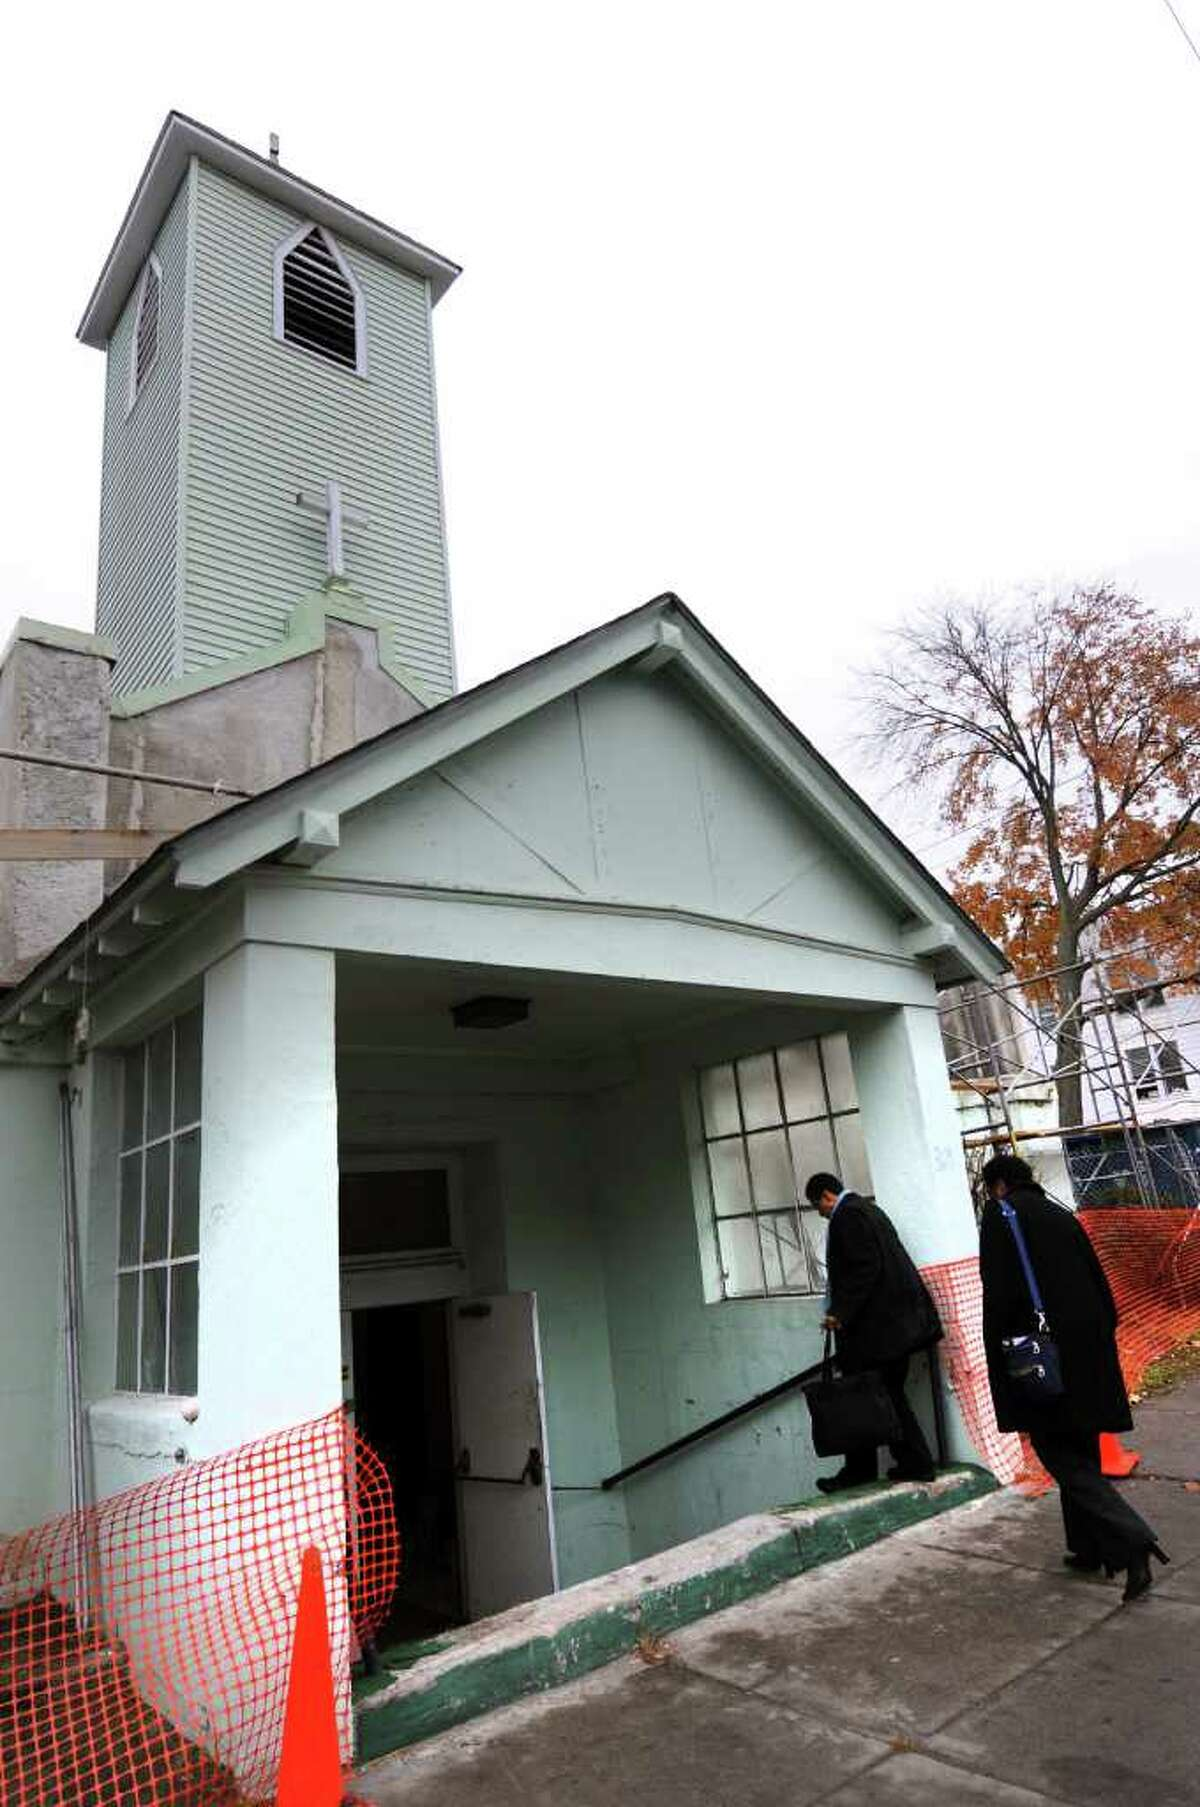 The former St. George?s Church becomes the Sister Maureen Joyce Center during the dedication ceremony on Wednesday, Oct. 26, 2011, in Albany, N.Y. (Cindy Schultz / Times Union)